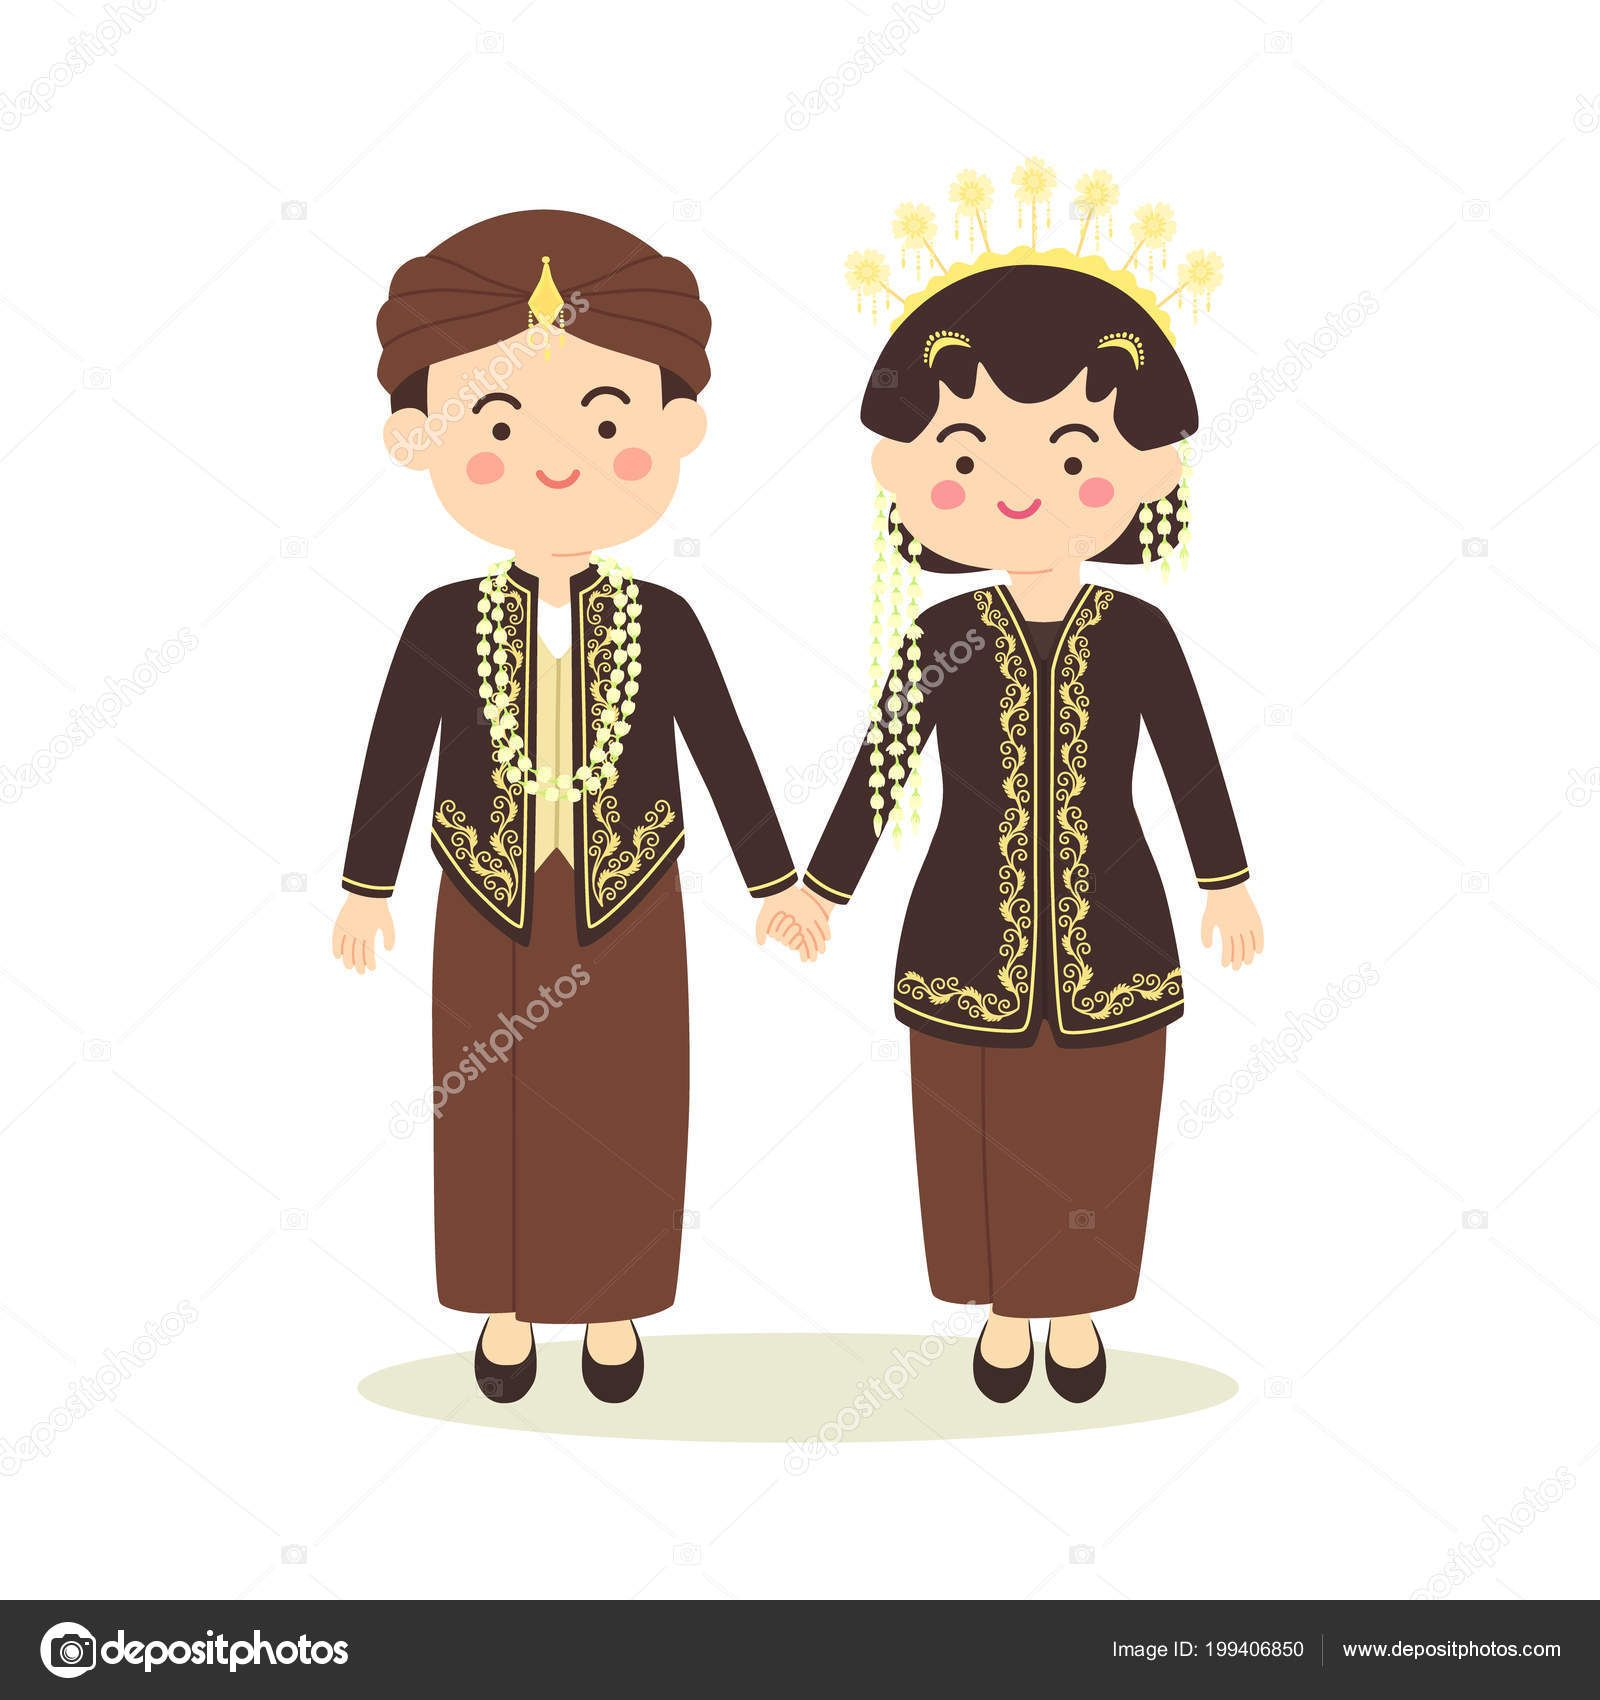 Download Royalty Free Central Java Indonesia Wedding Couple